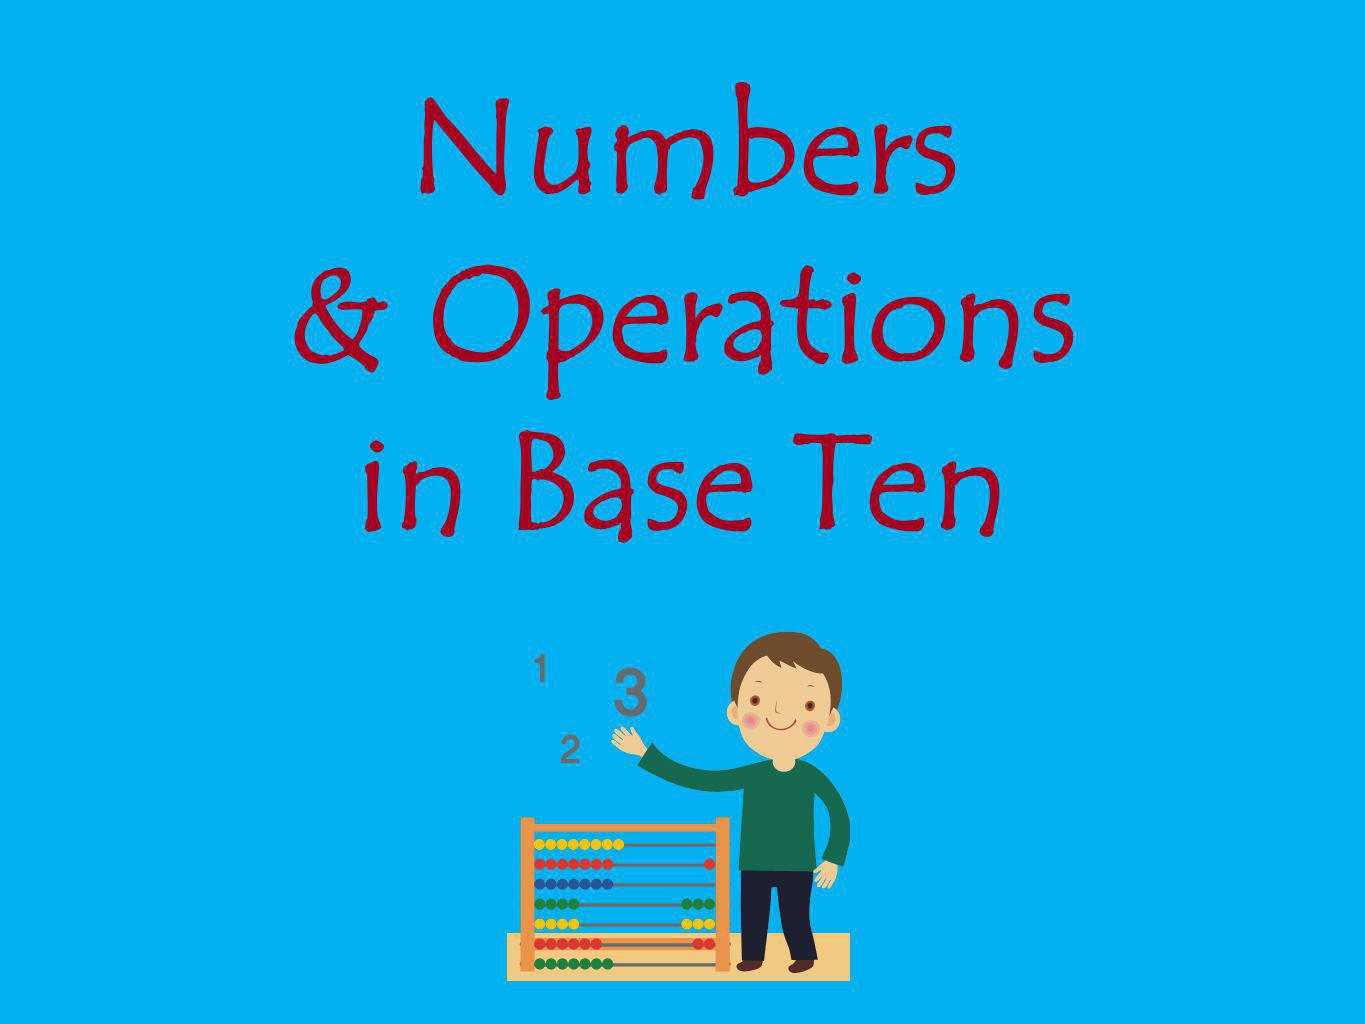 Numbers & Operations in Base Ten